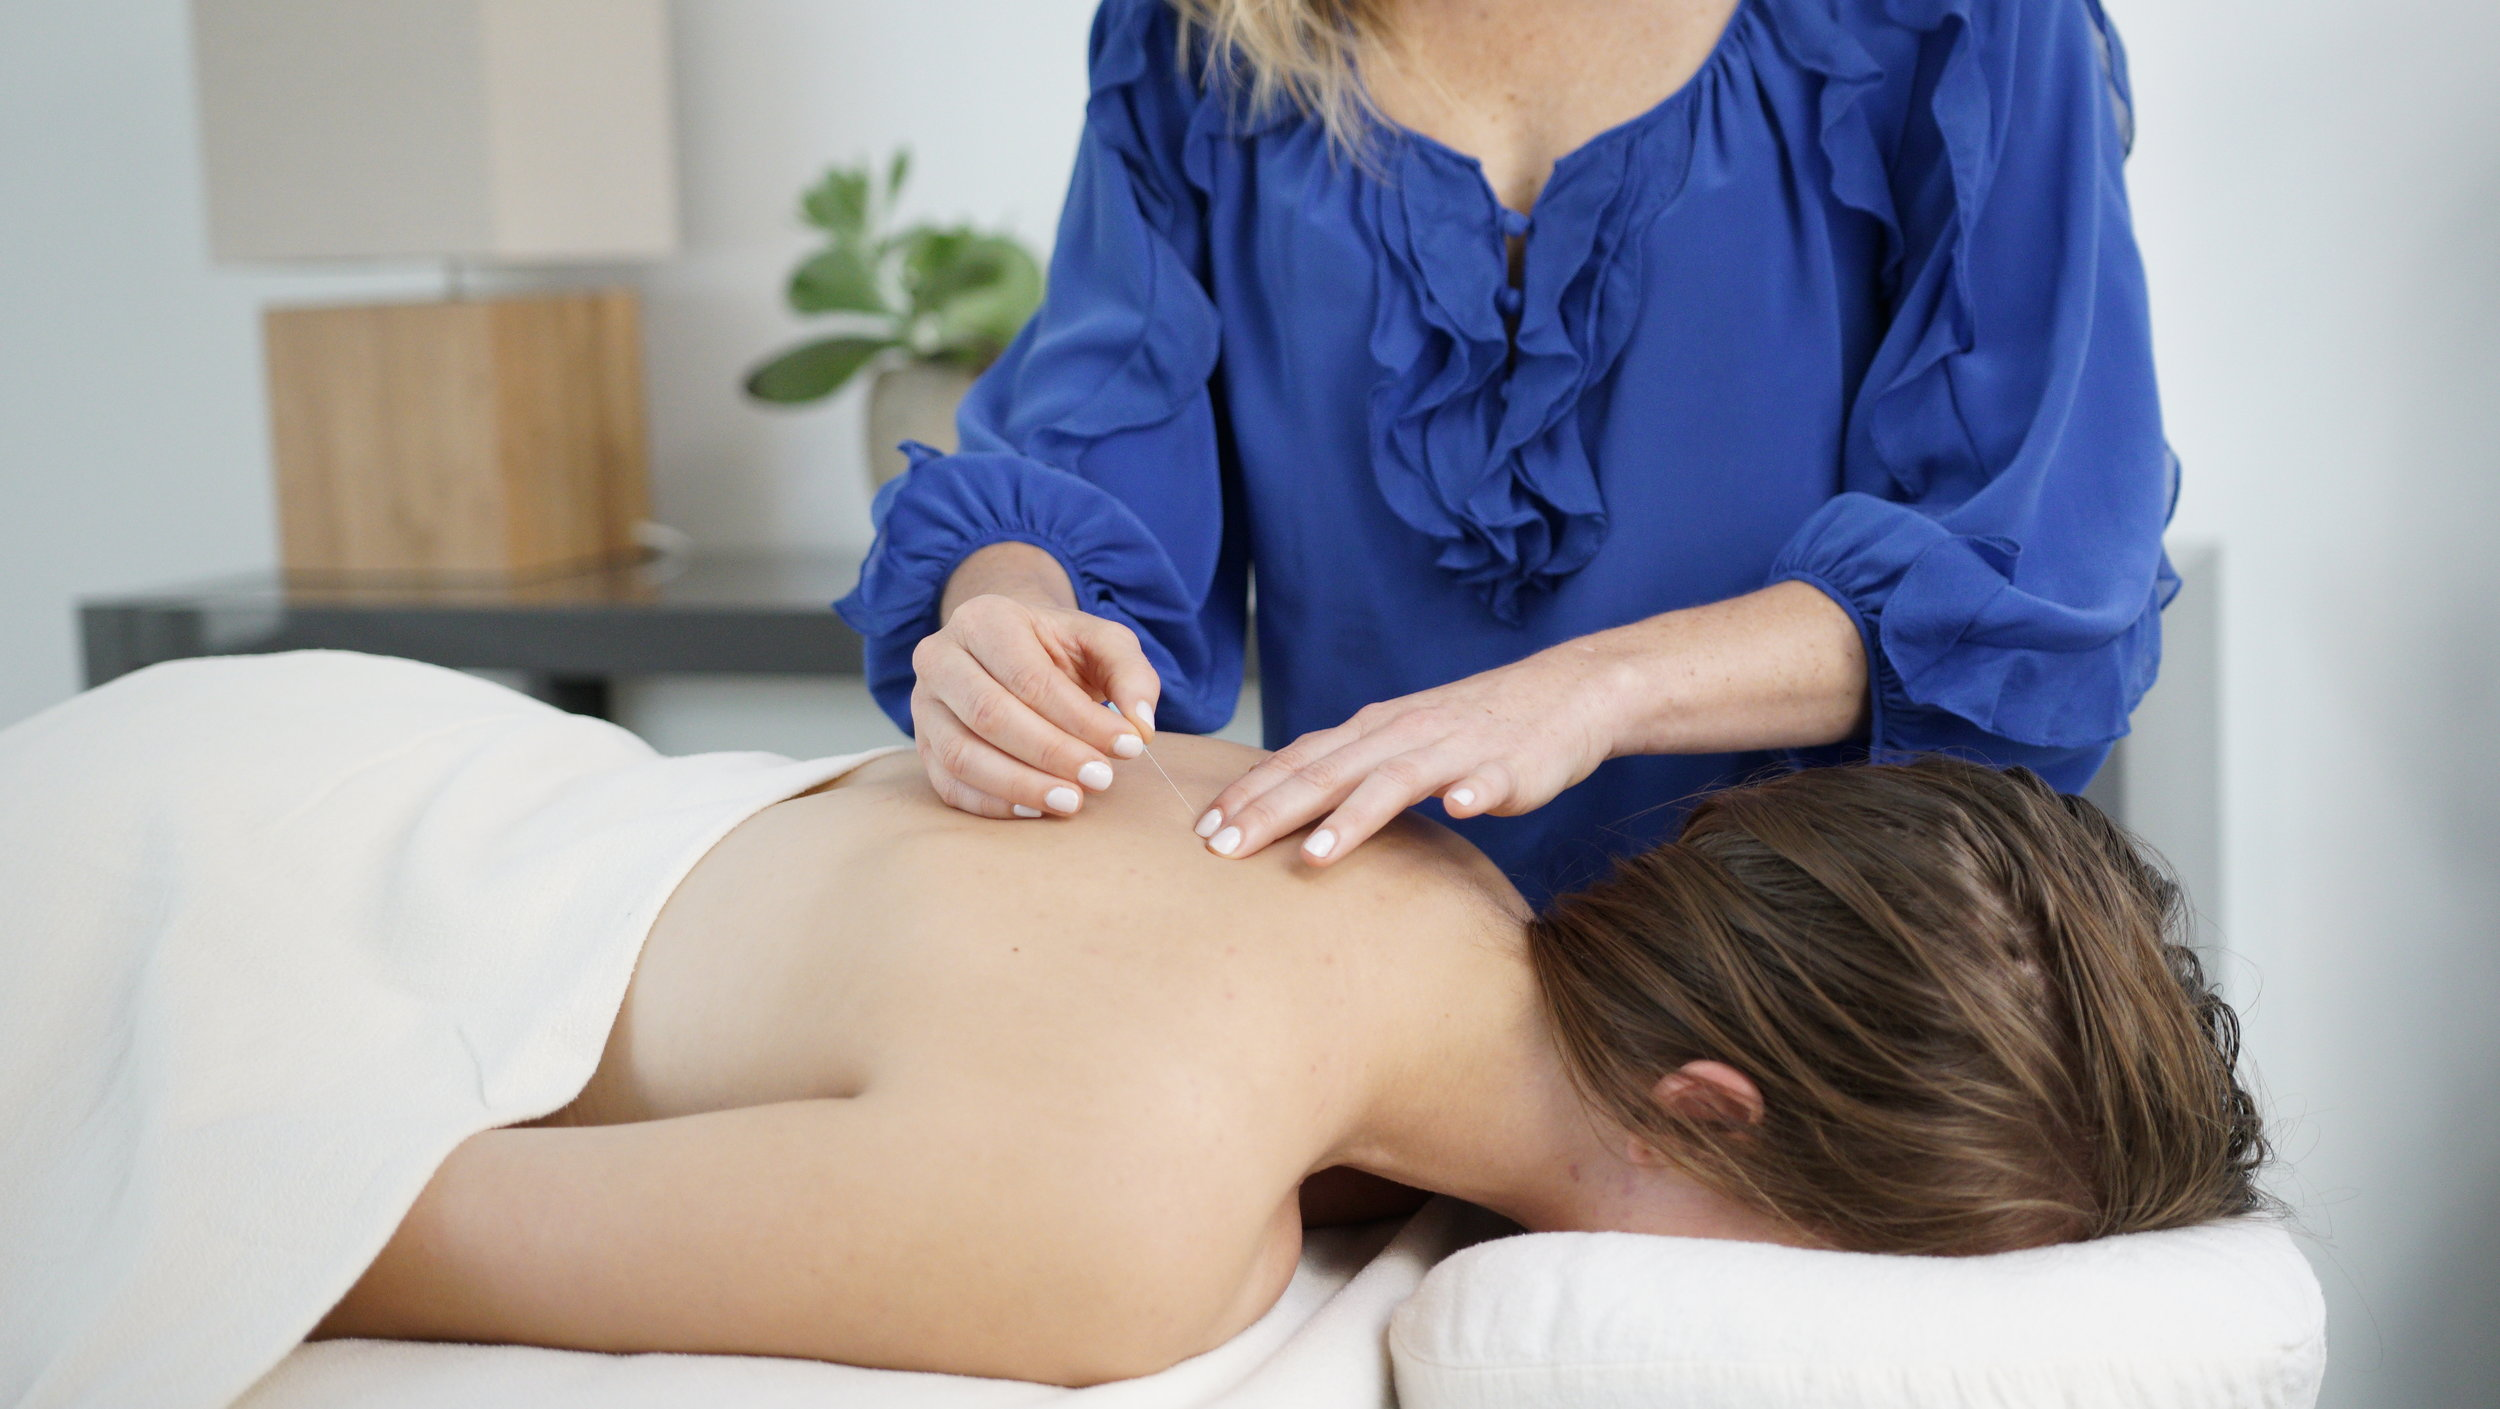 Acupuncture treatments at Prinz Acupuncture, NYC